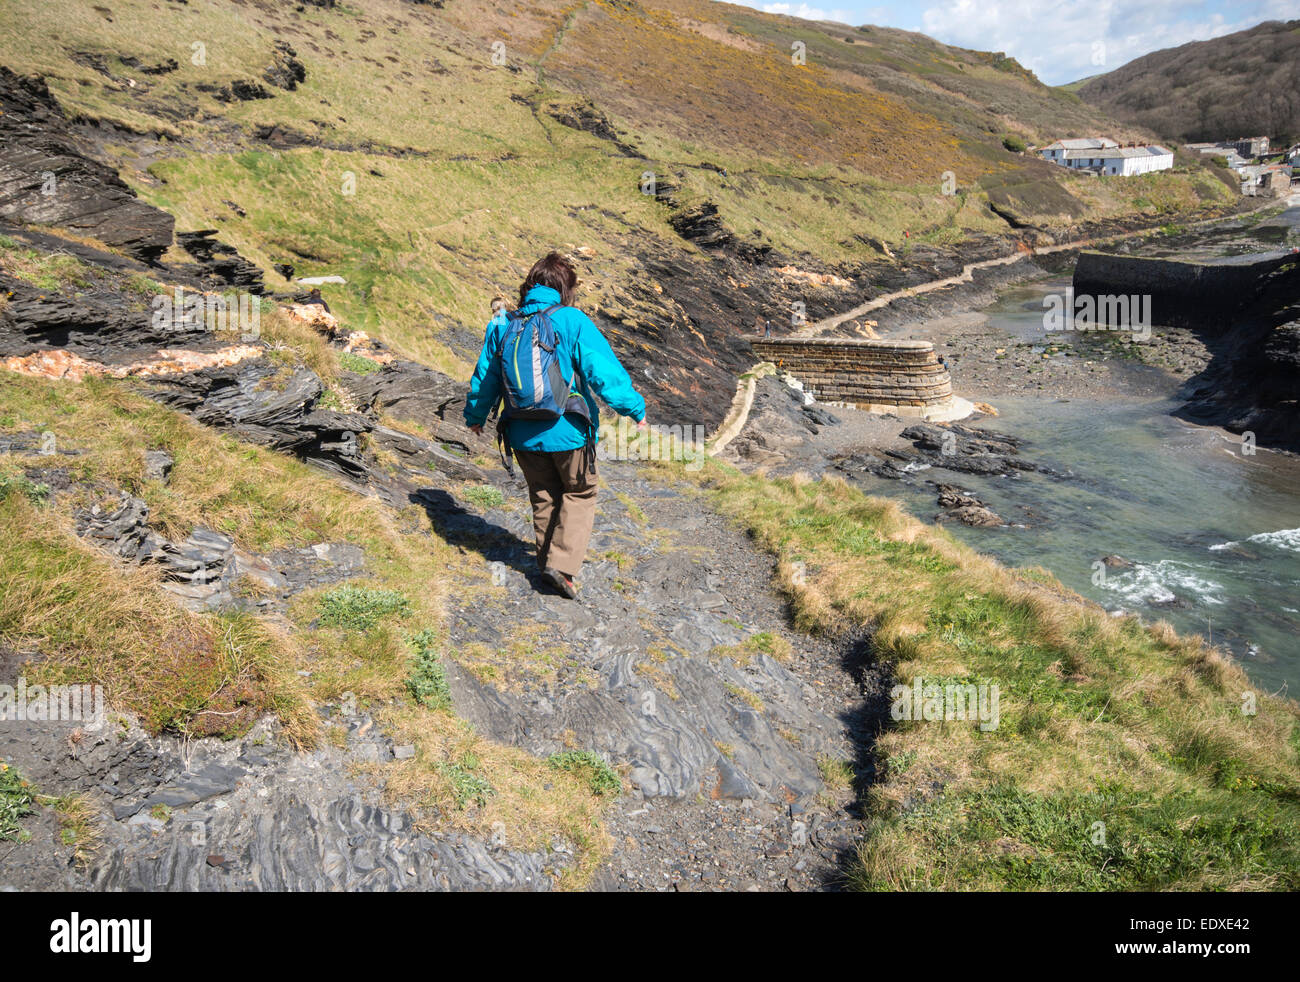 A woman walking along the South West Coast Path near Boscastle in north Cornwall, England, UK - Stock Image